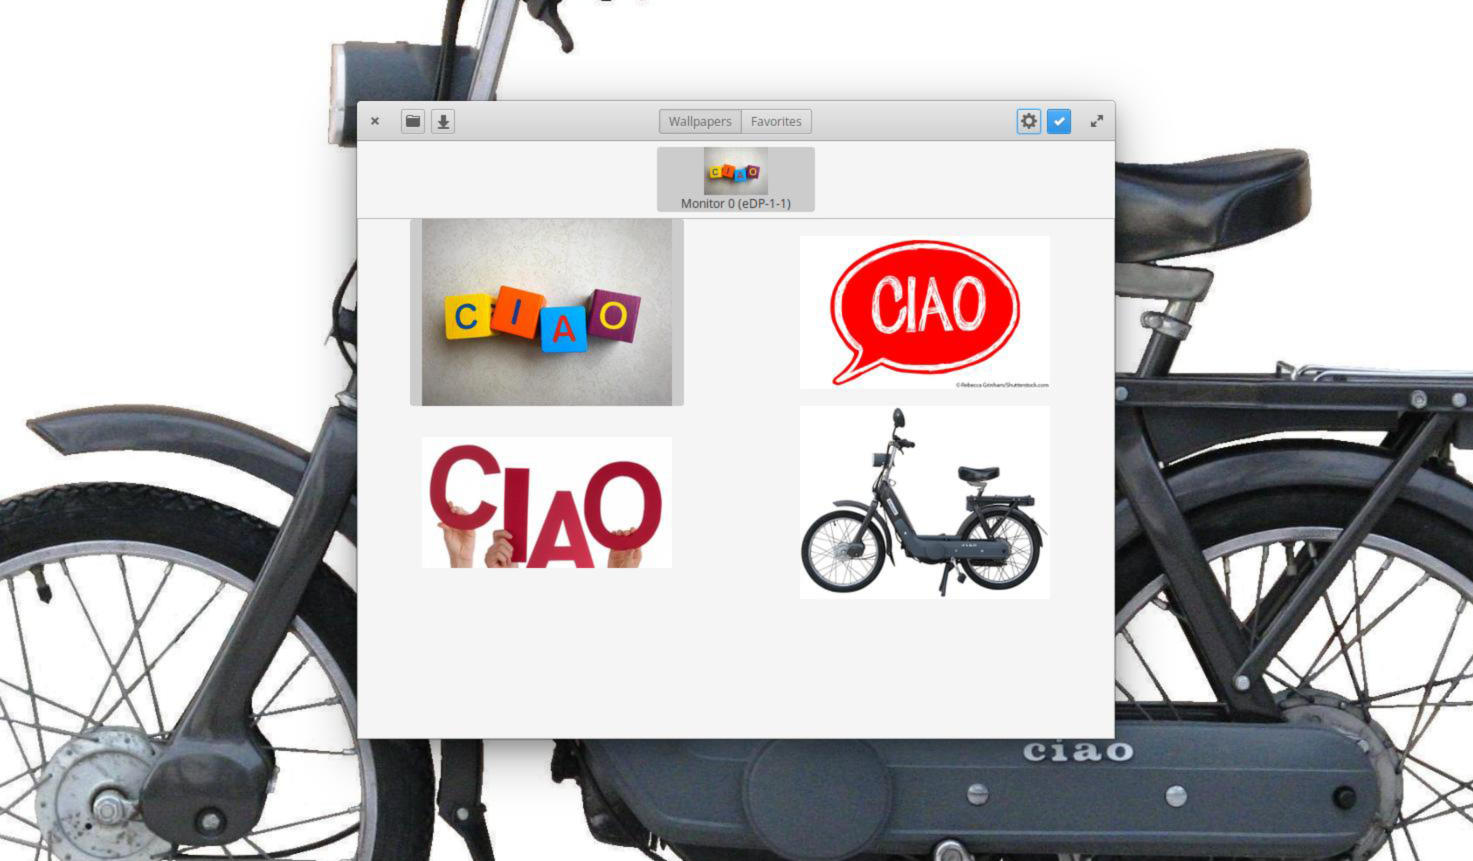 Come impostare sfondi diversi su piu display in GNOME Linux 1